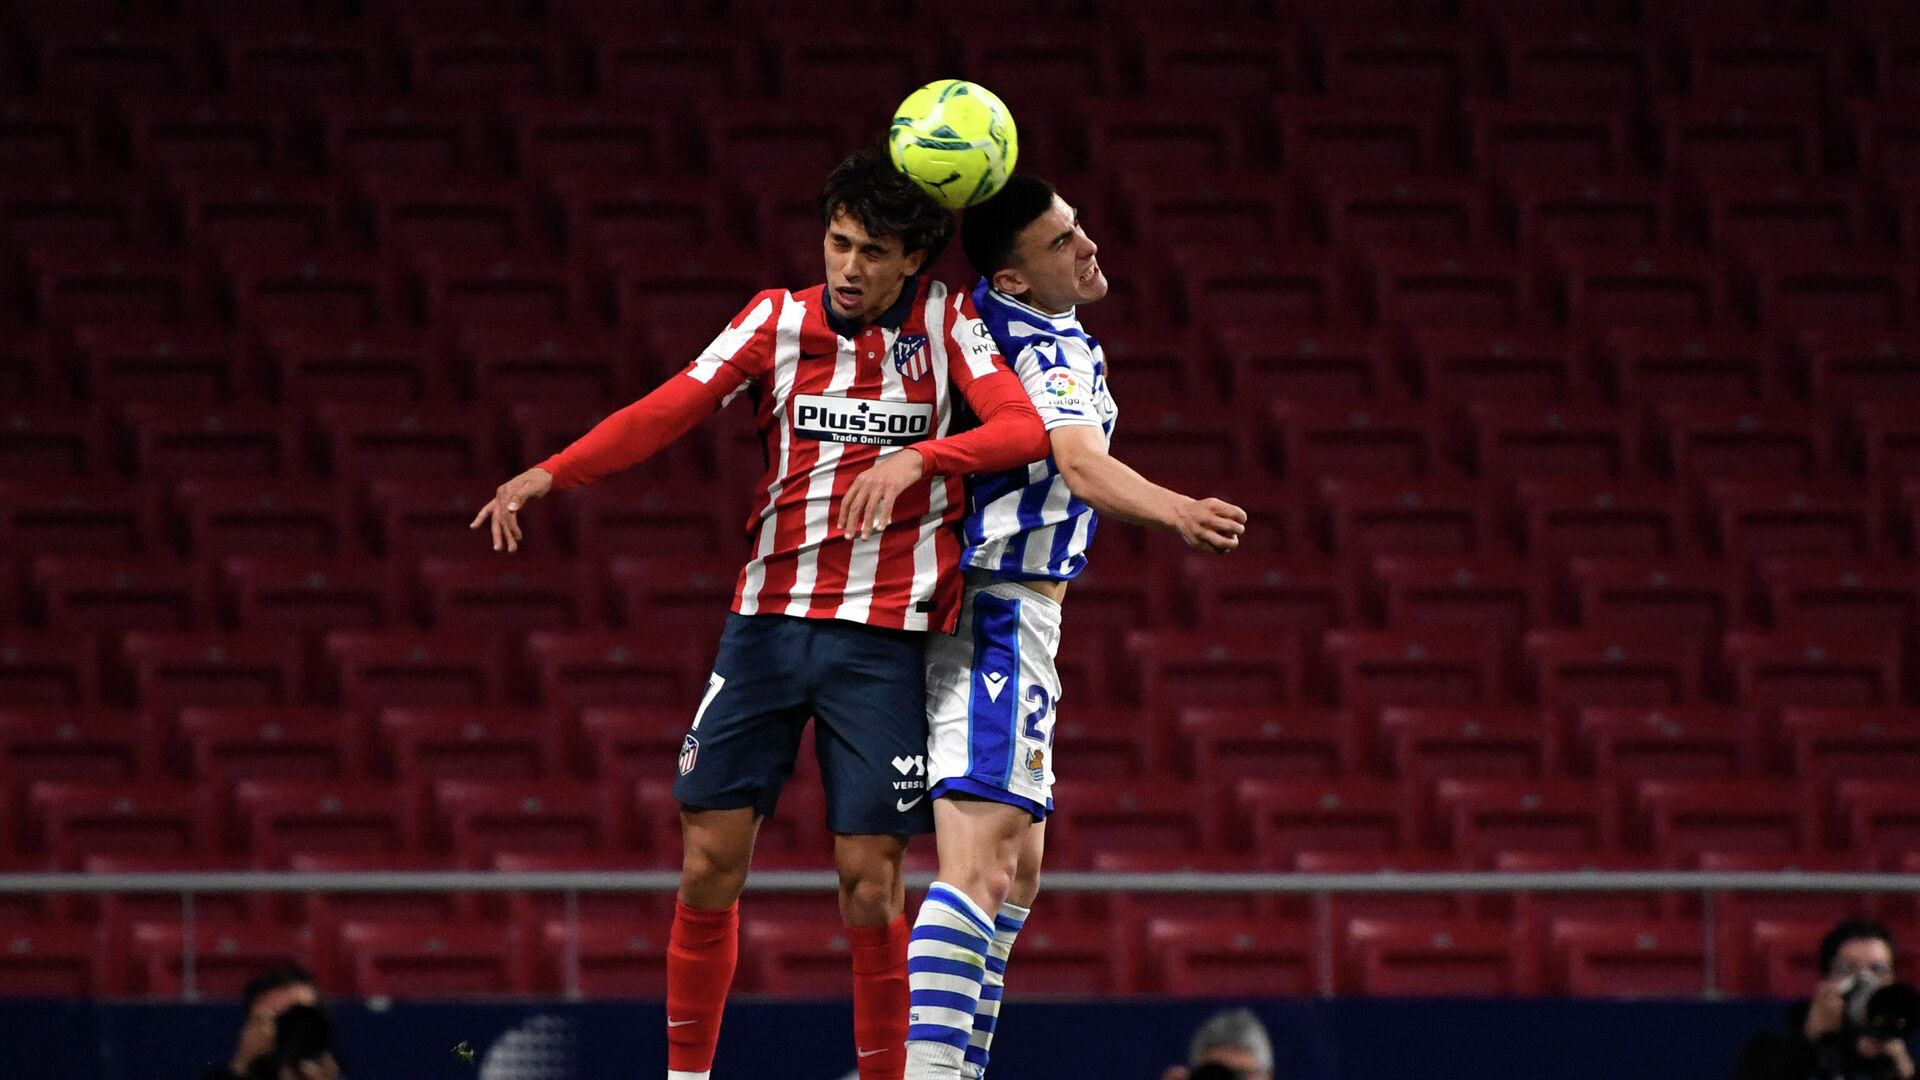 Atletico Madrid's Portuguese midfielder Joao Felix (L) jumps for the ball with Real Sociedad's Spanish forward Ander Barrenetxea during the Spanish league football match Club Atletico de Madrid against Real Sociedad at the Wanda Metropolitano stadium in Madrid on May 12, 2021. (Photo by PIERRE-PHILIPPE MARCOU / AFP) - РИА Новости, 1920, 13.05.2021